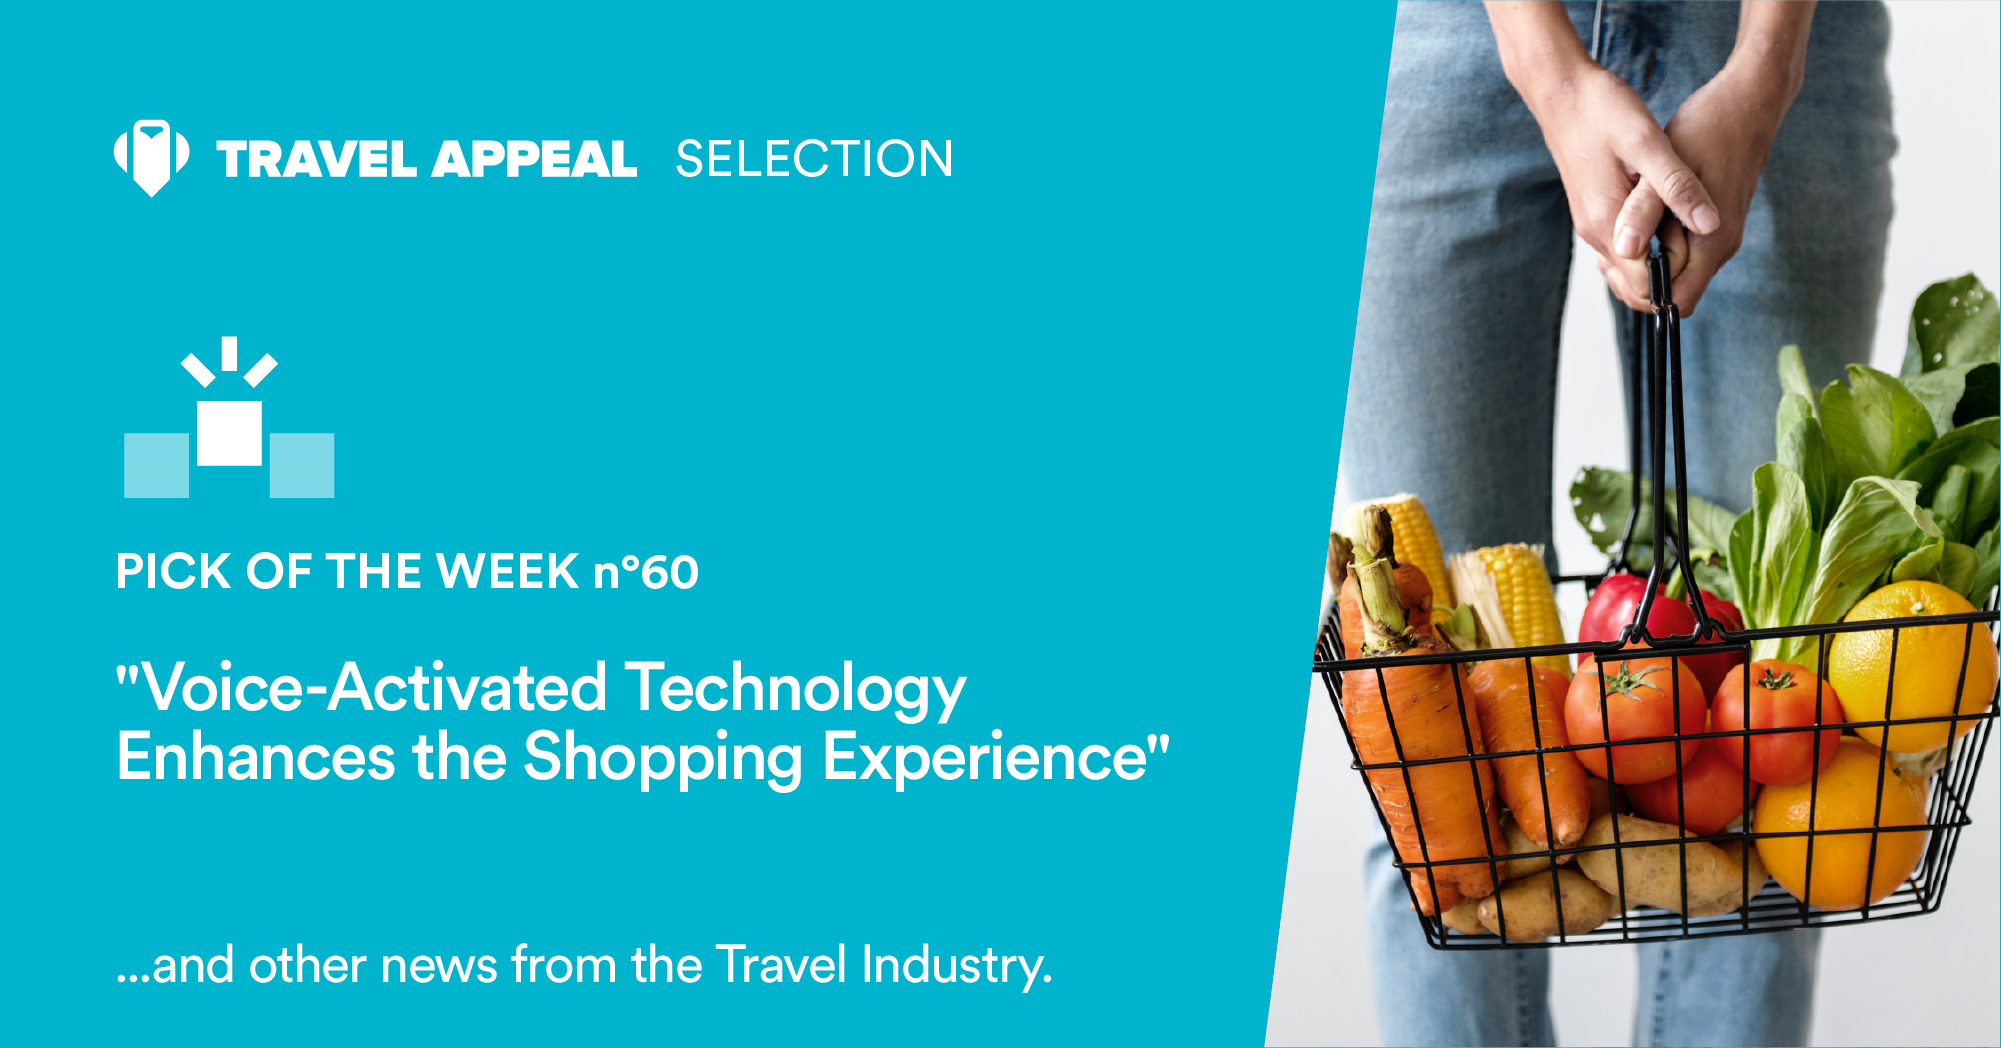 Voice-Activated Technology Enhances the Shopping Experience